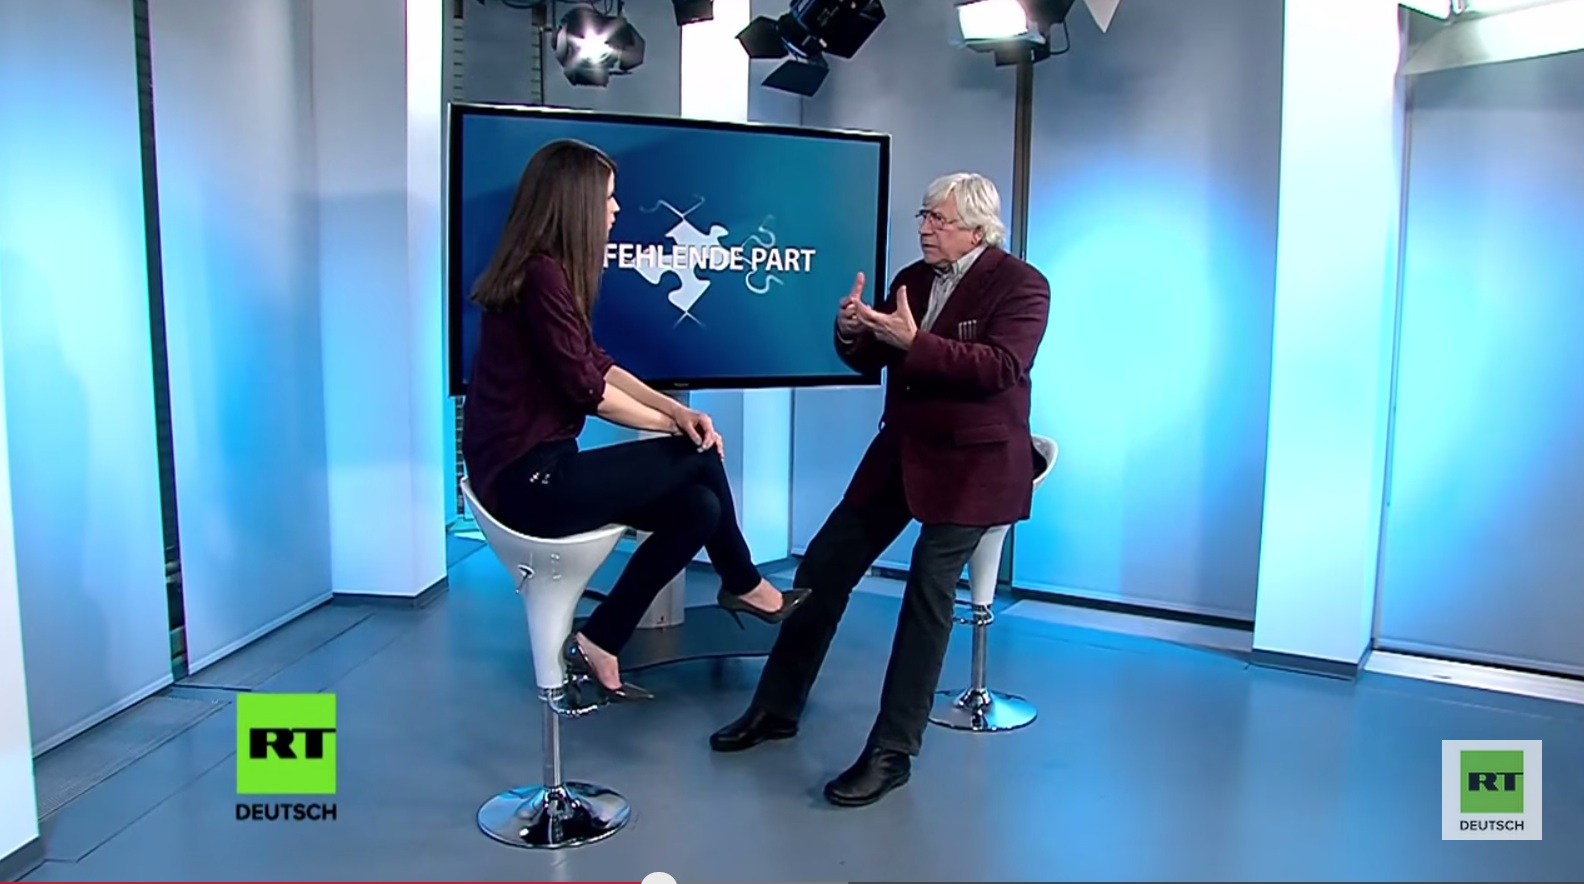 RT Deutsch, Bild: Der fehlende Part, 30.04.2015. Johanna Kindermann im Interview mit Bazon Brock..